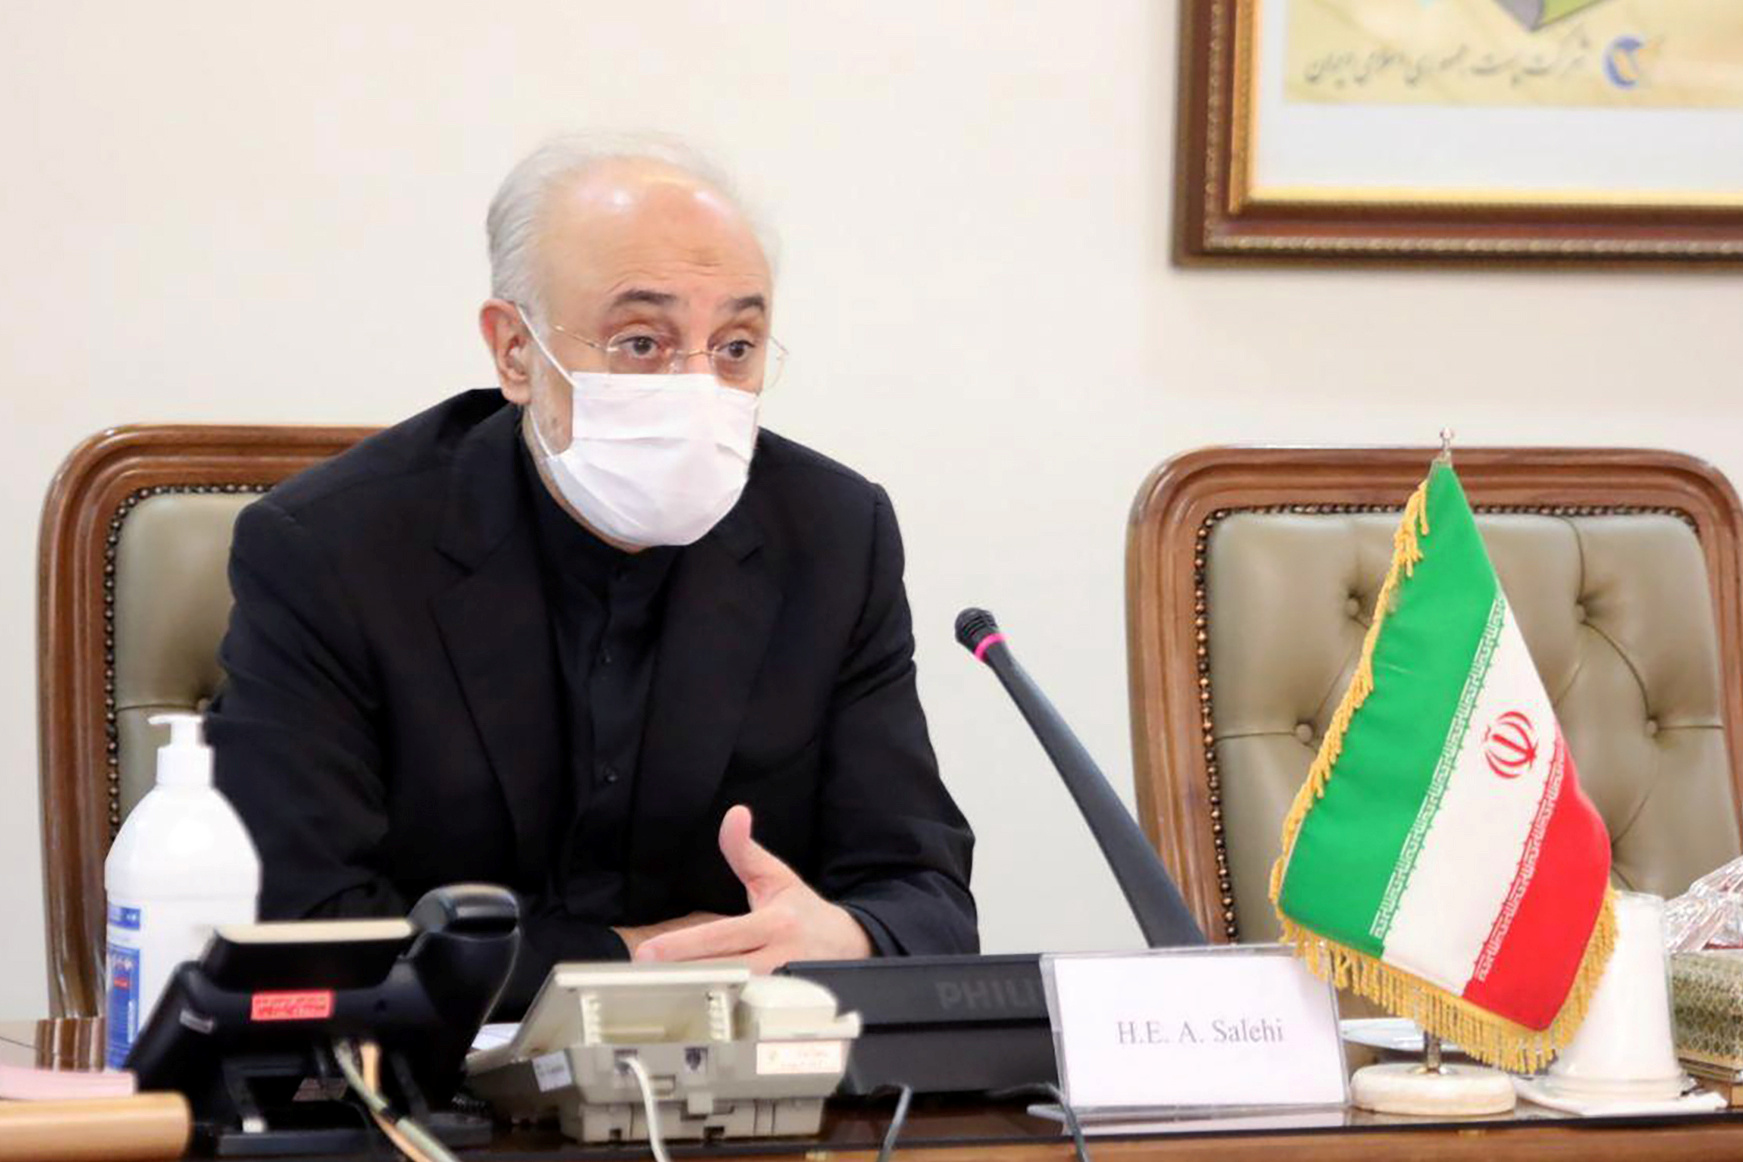 Head of Iran's Atomic Energy Organization Ali-Akbar Salehi wears a  mask as he speaks during a meeting with International Atomic Energy Agency (IAEA) Director General Rafael Grossi, in Tehran, Iran August 25, 2020. WANA (West Asia News Agency) via REUTERS